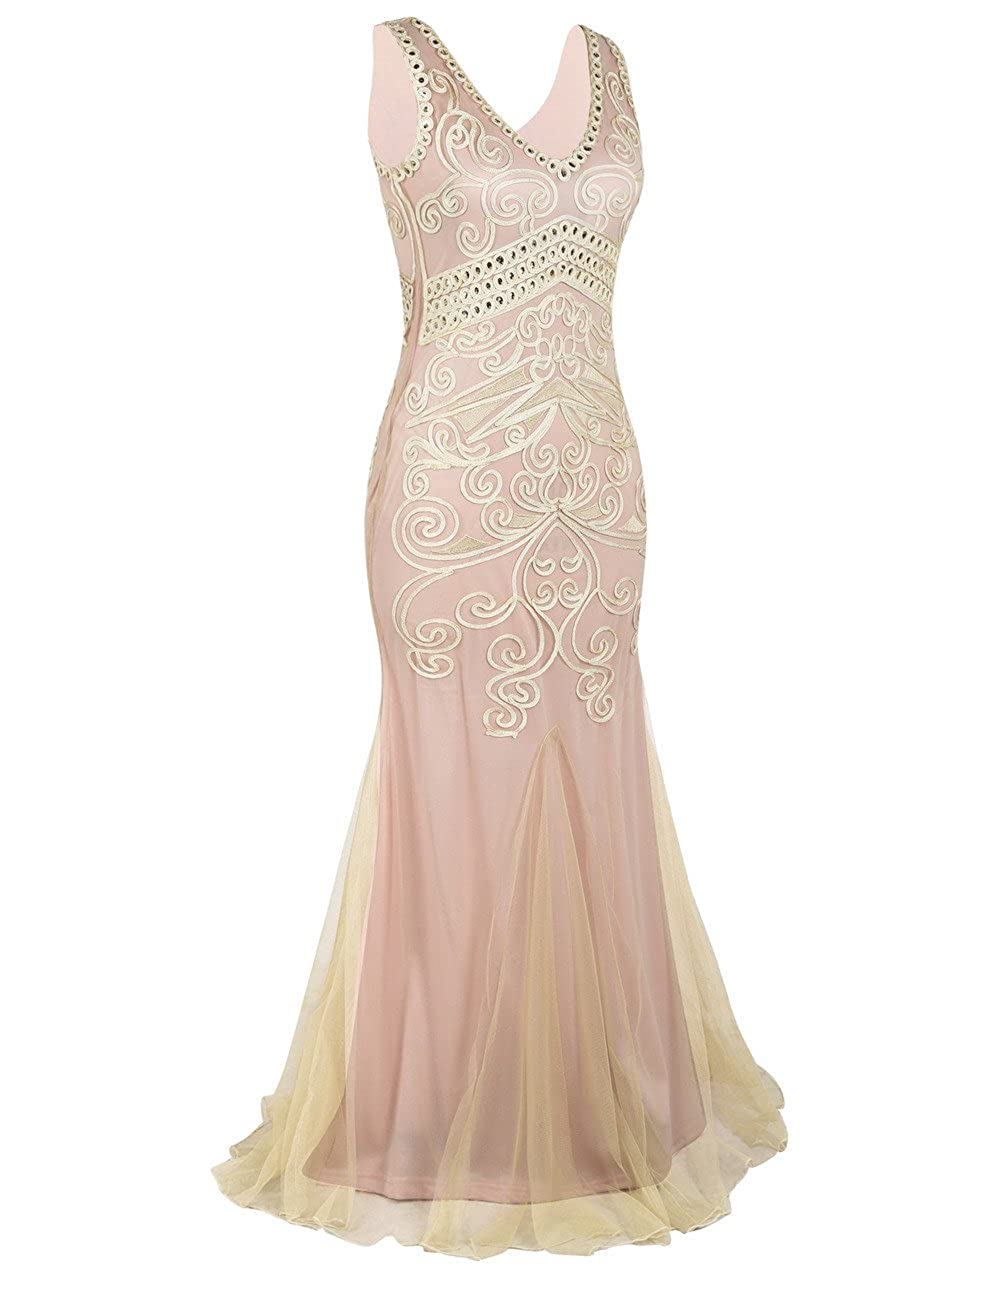 PrettyGuide Women 1920s Prom Gown Long Mermaid Formal Evening Dress: Amazon.co.uk: Clothing